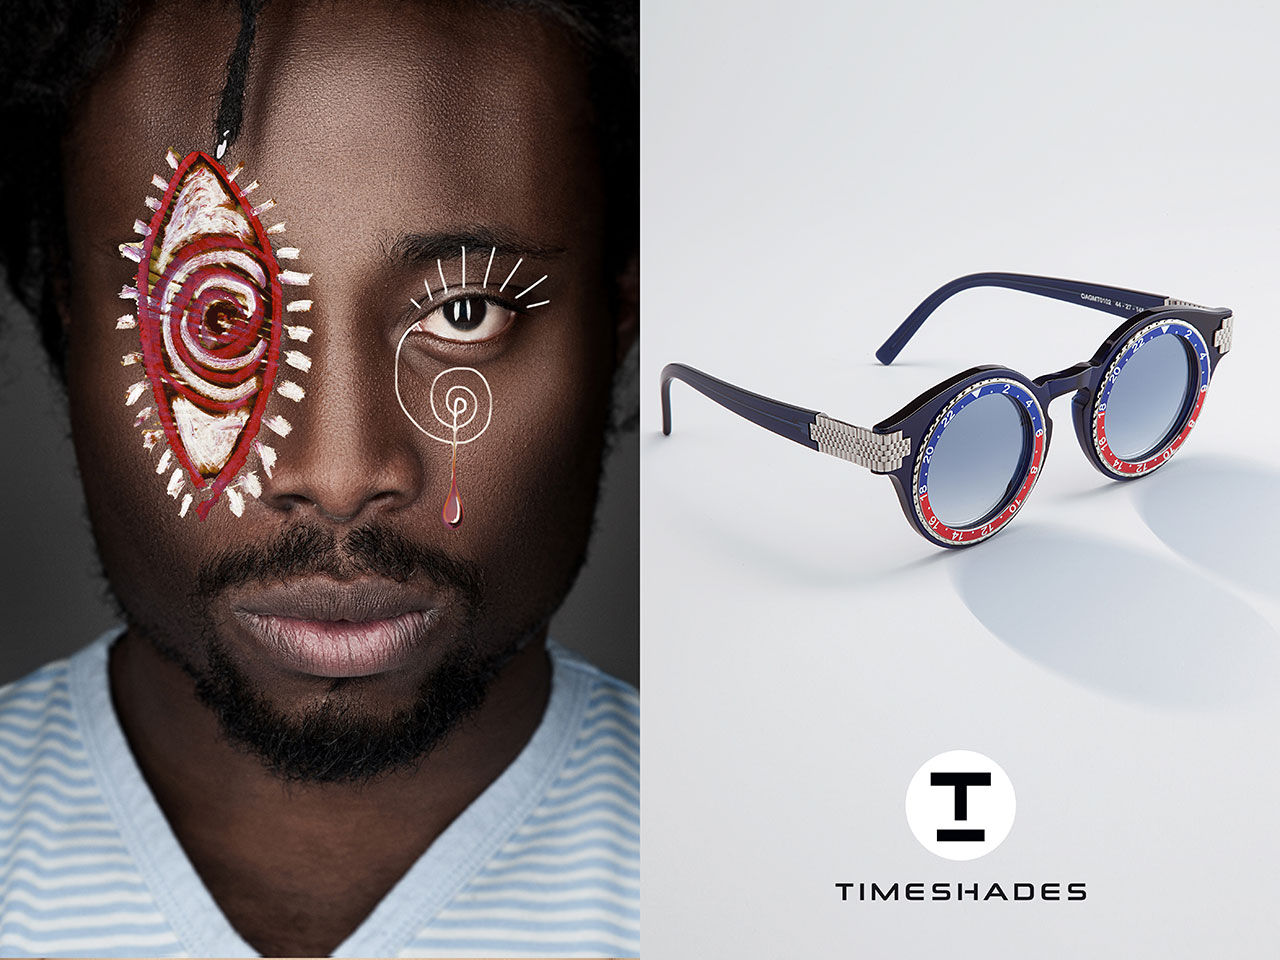 timeshades -4 faces